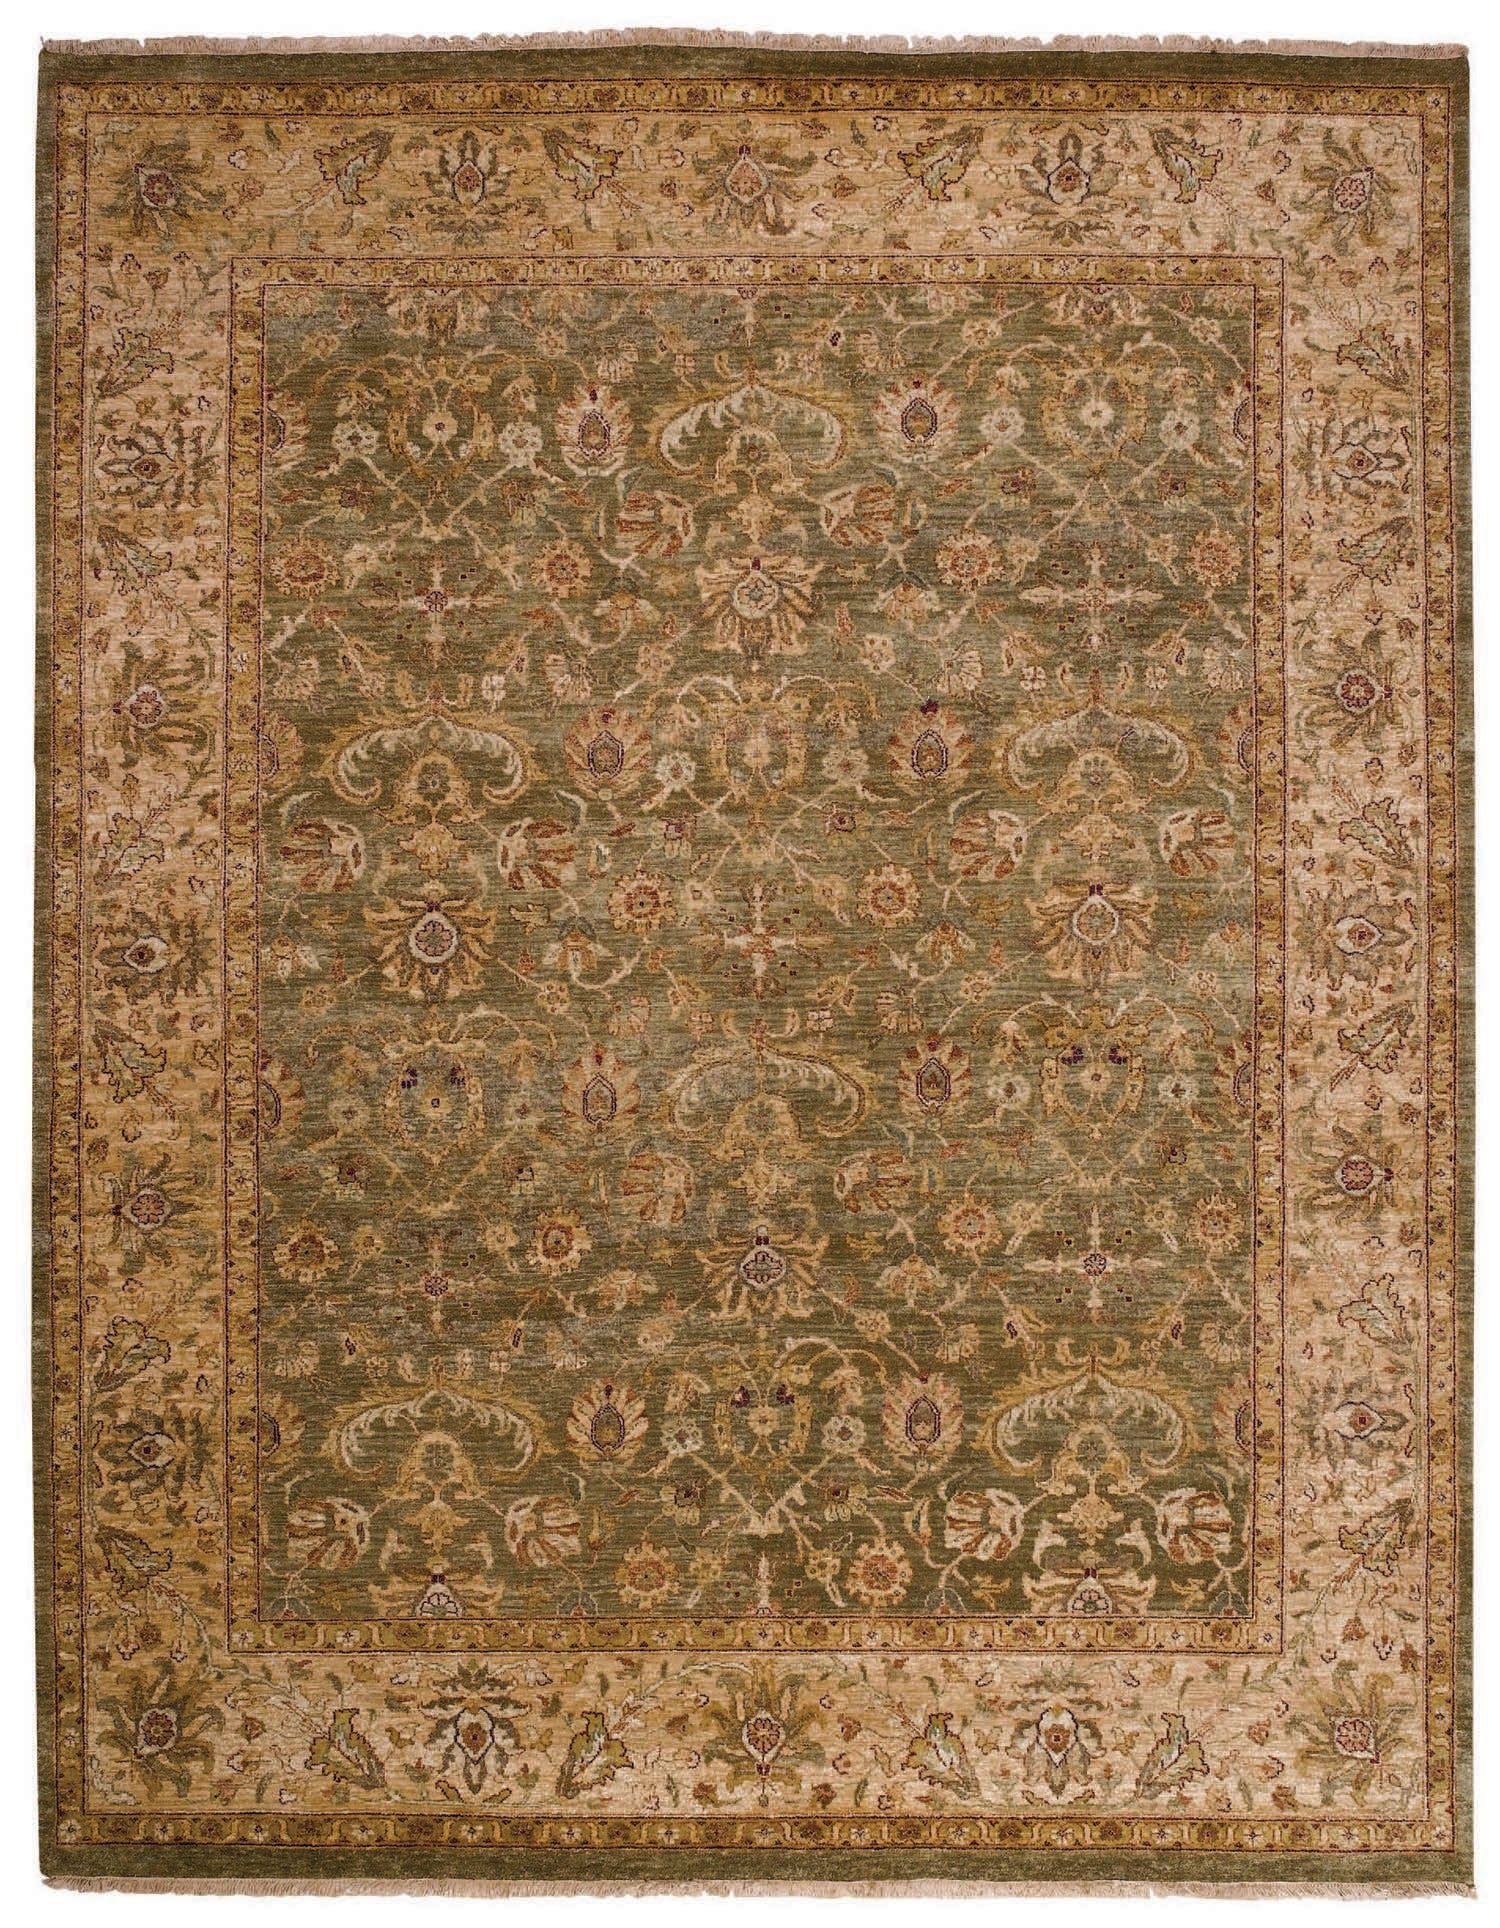 Capel Boca Park Mahal 1774 Green Beige 200 Area Rug Incredible Rugs And Decor